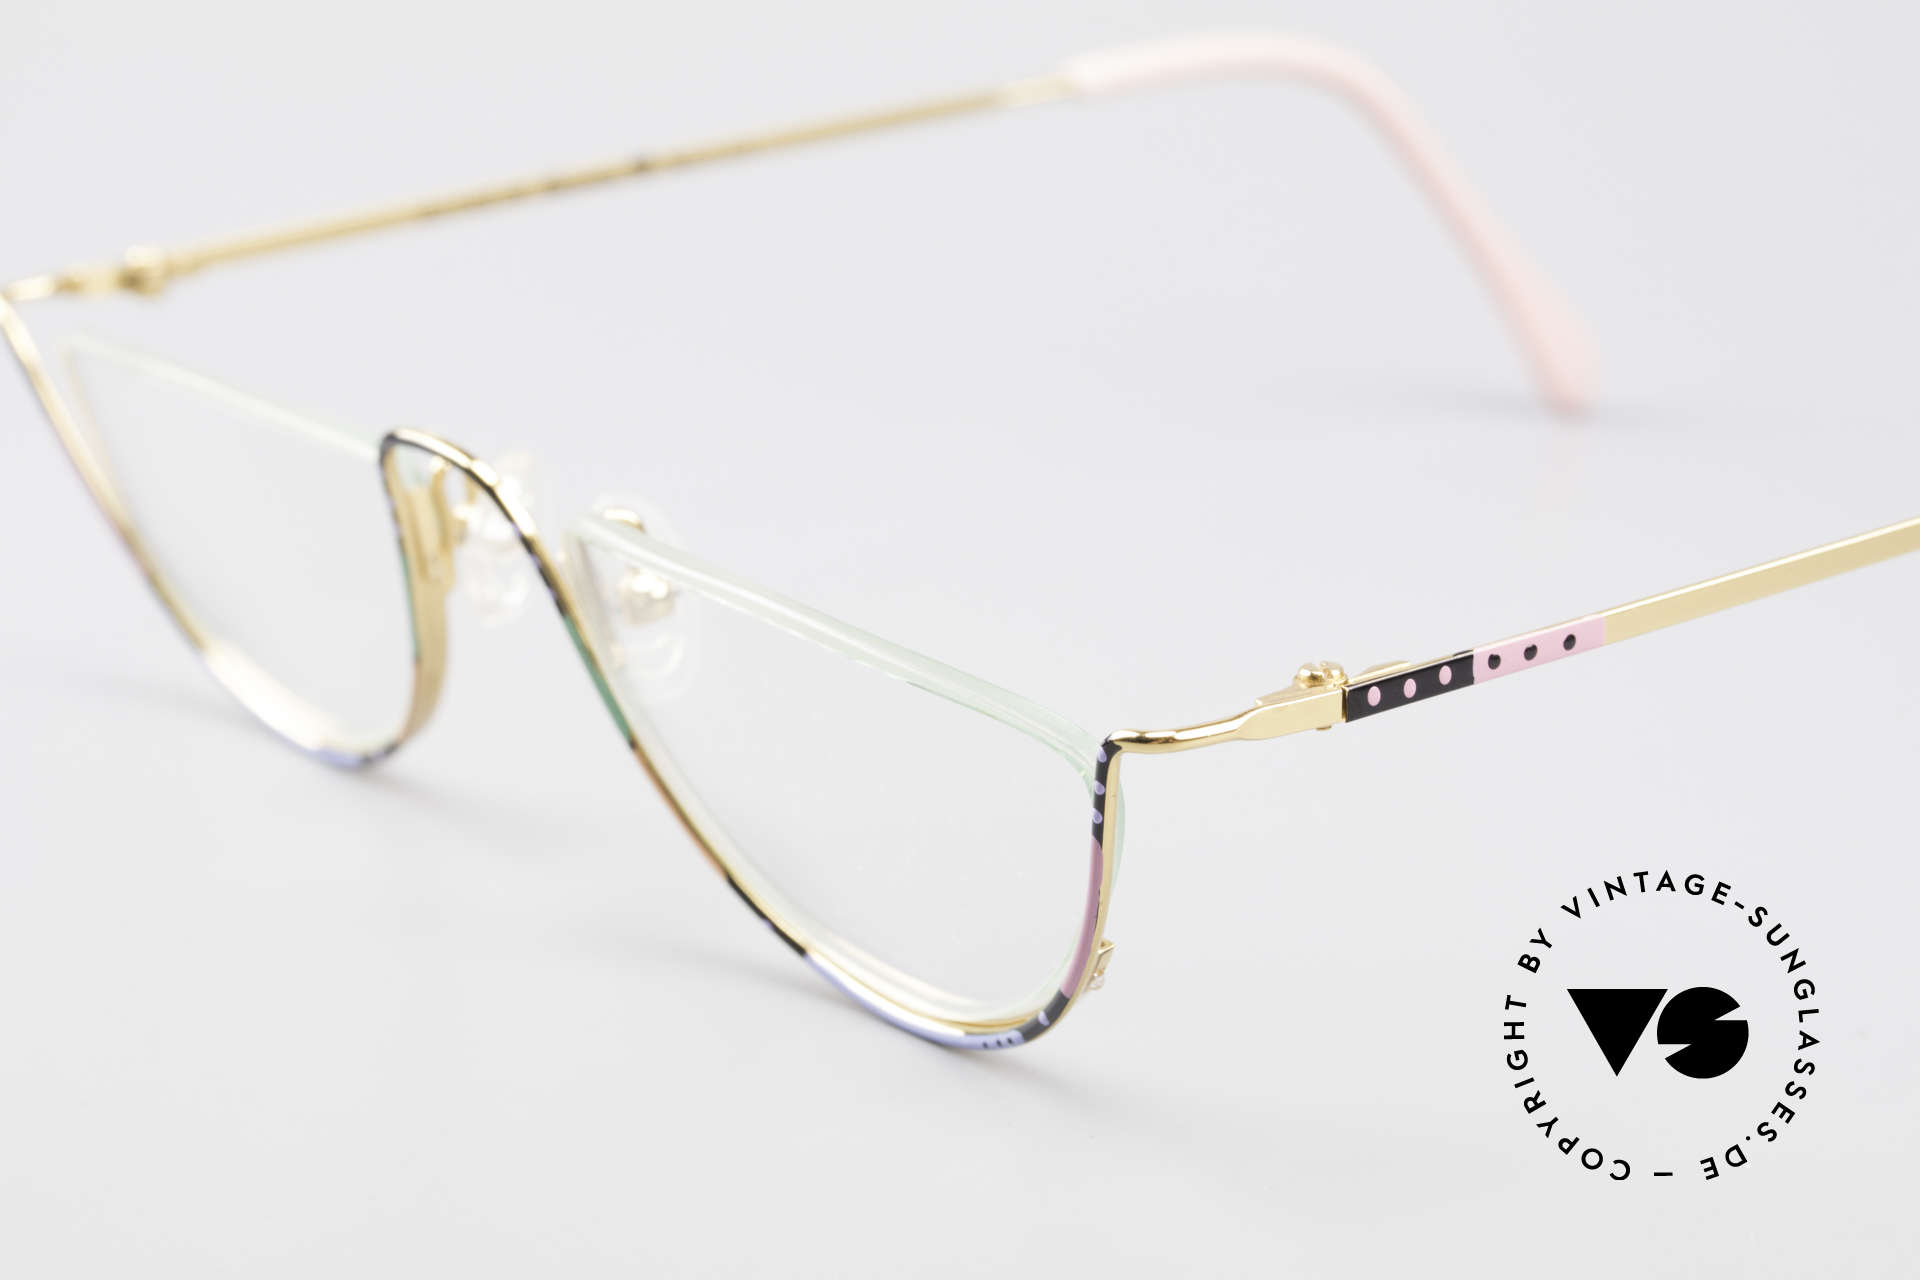 Casanova FC11 Colorful Reading Eyeglasses, 24kt gold-plated frame & charming patterned / colored, Made for Women